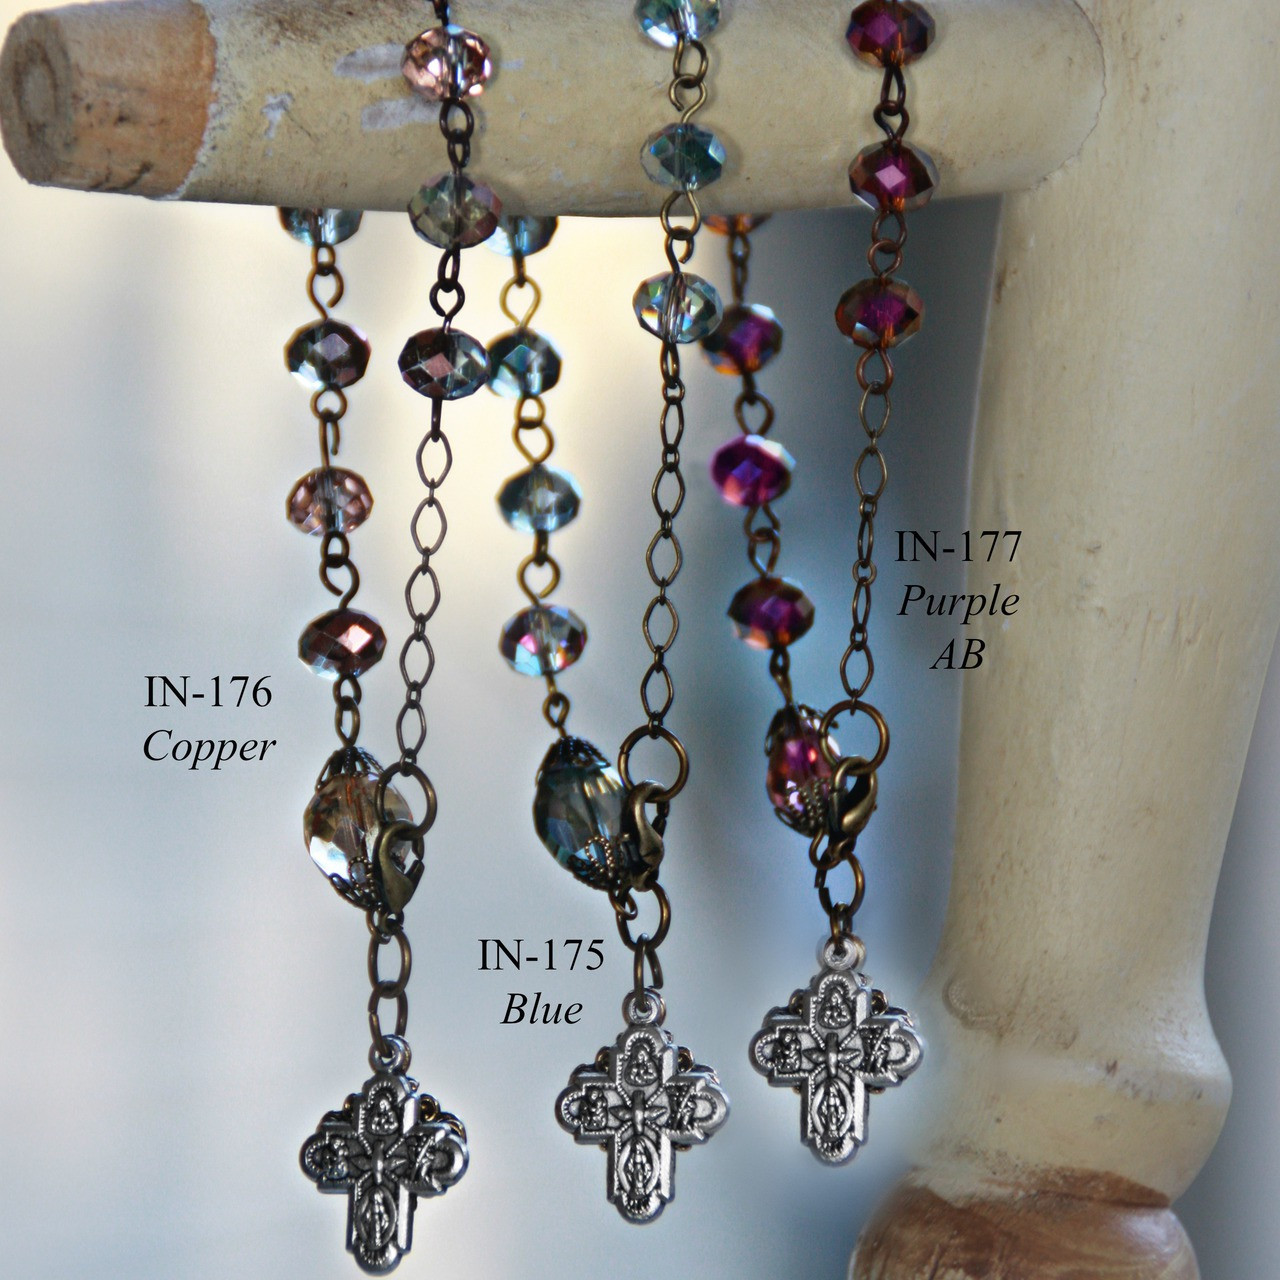 IN-175 Gorgeous Blues Rosary Bracelet